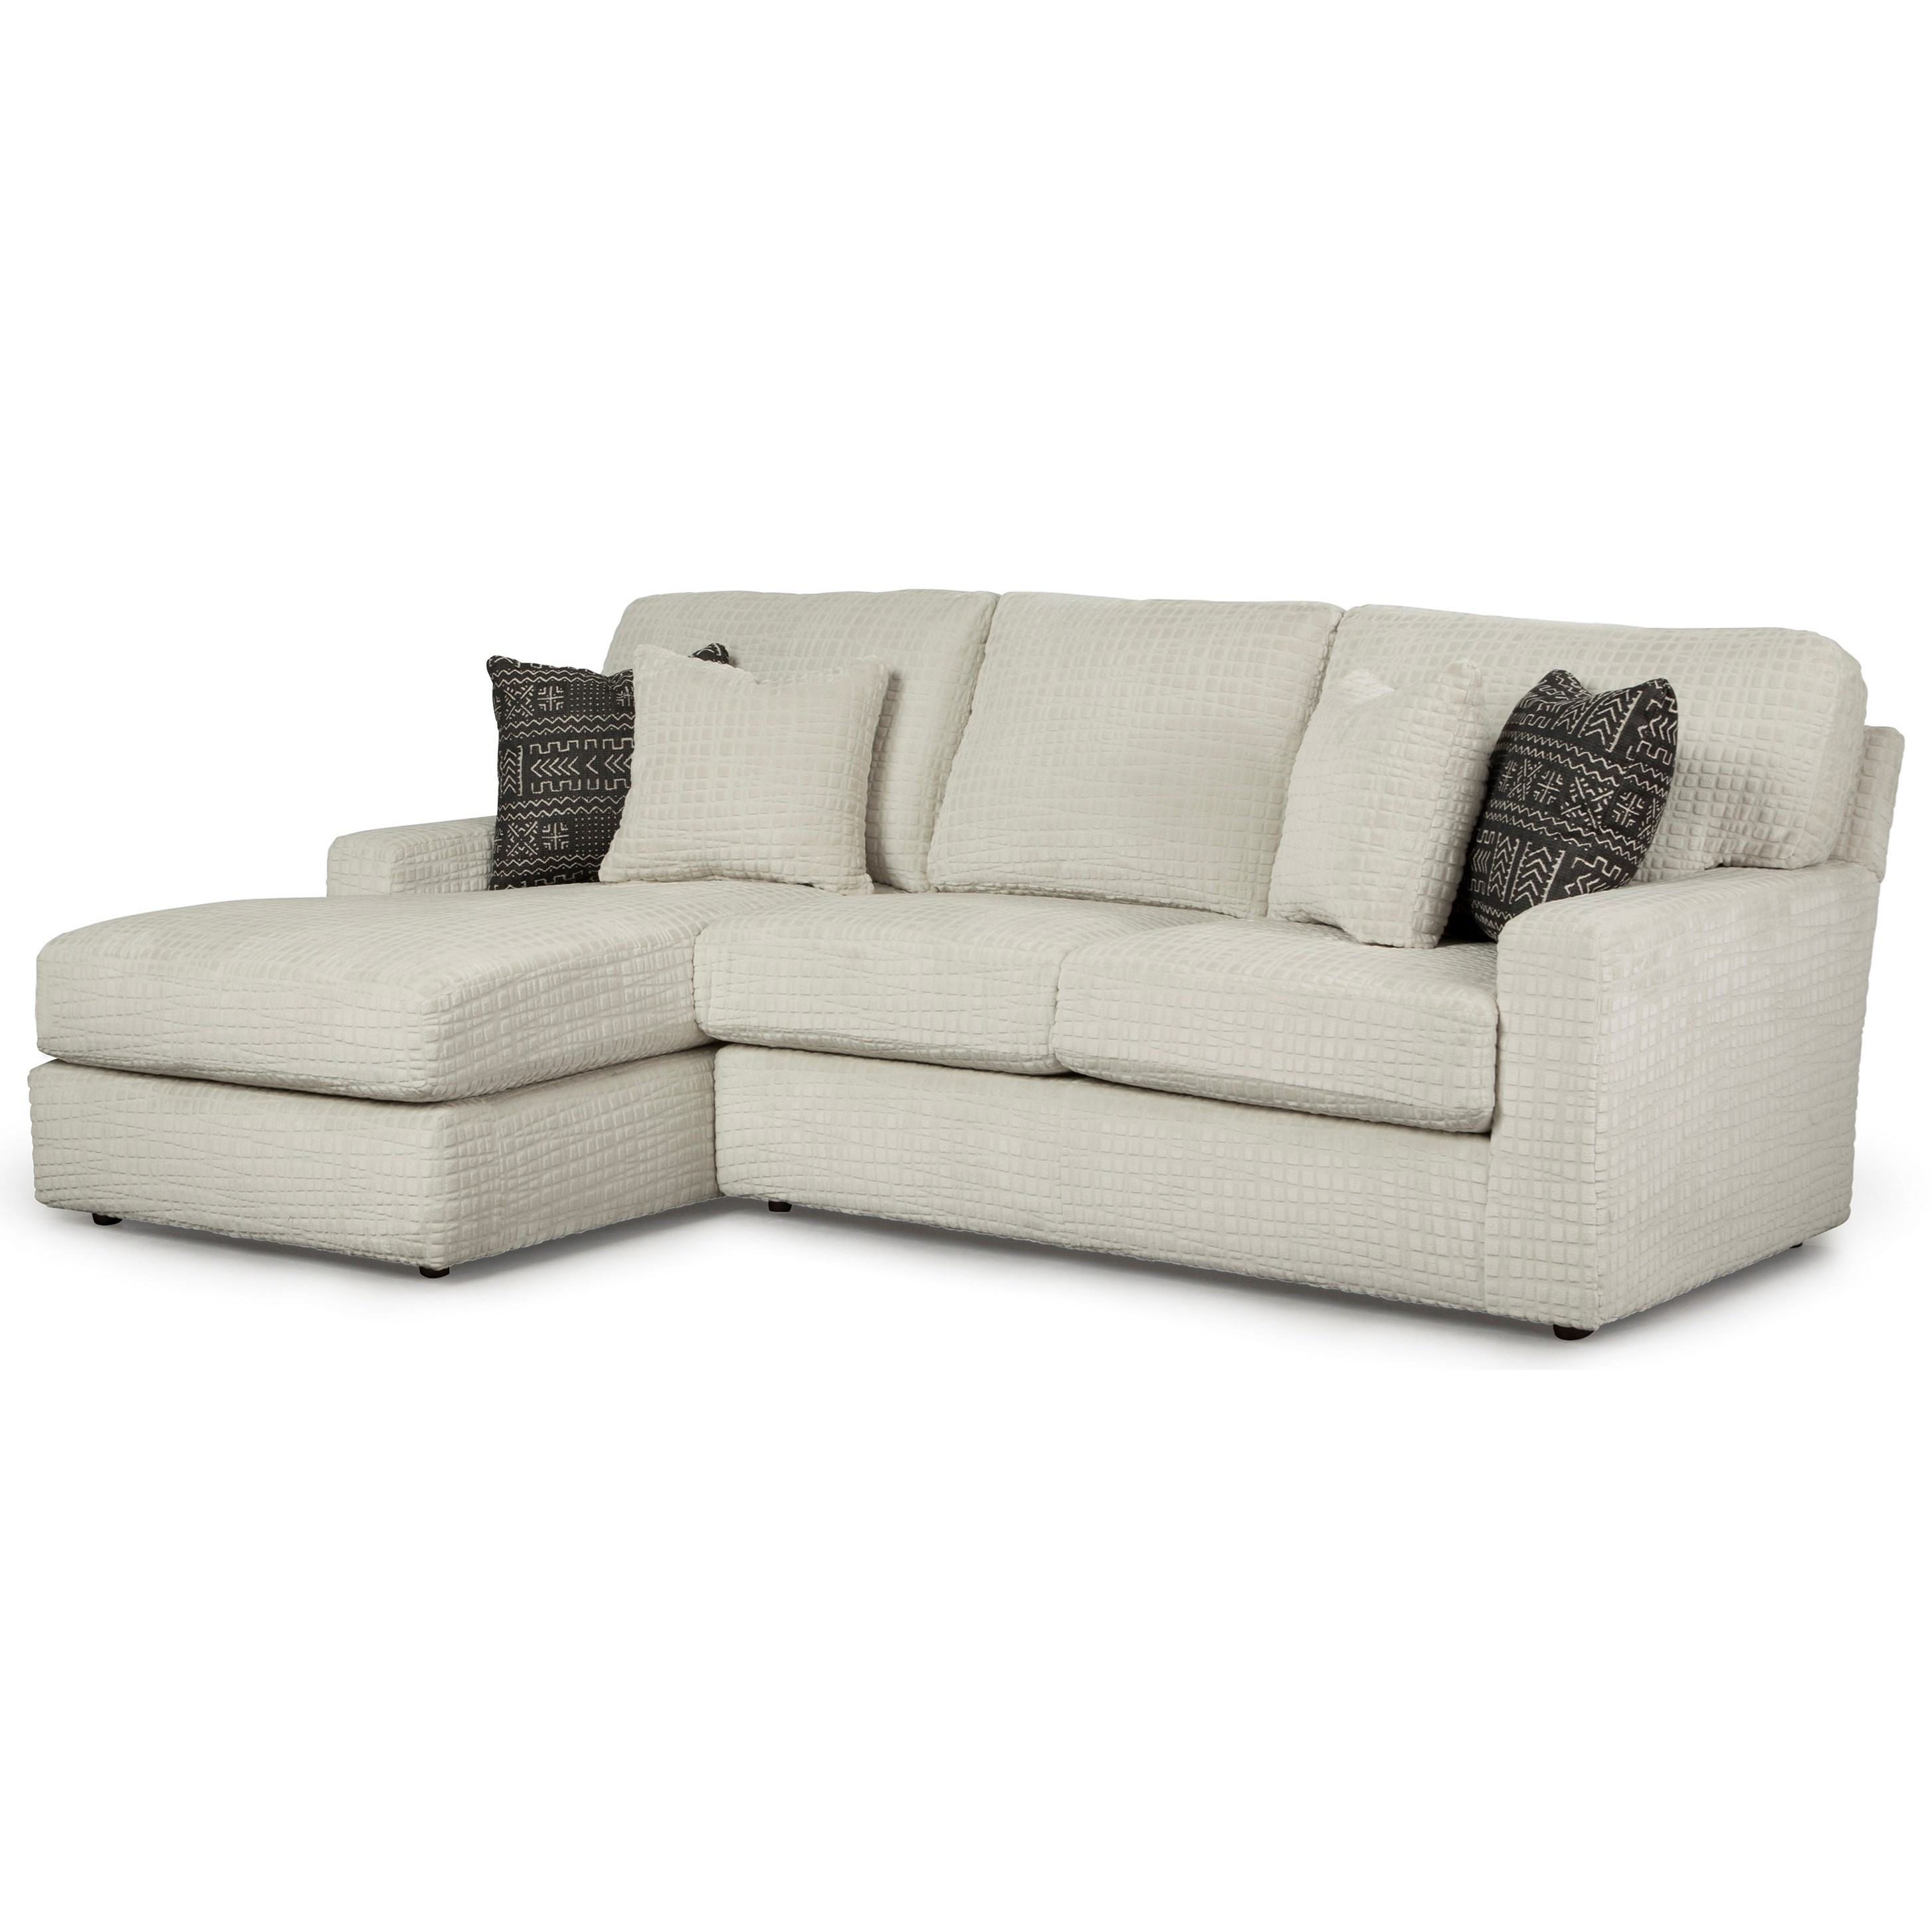 Dovely 2 Piece Sectional Sofa w/ LAF Chaise by Best Home Furnishings at Baer's Furniture